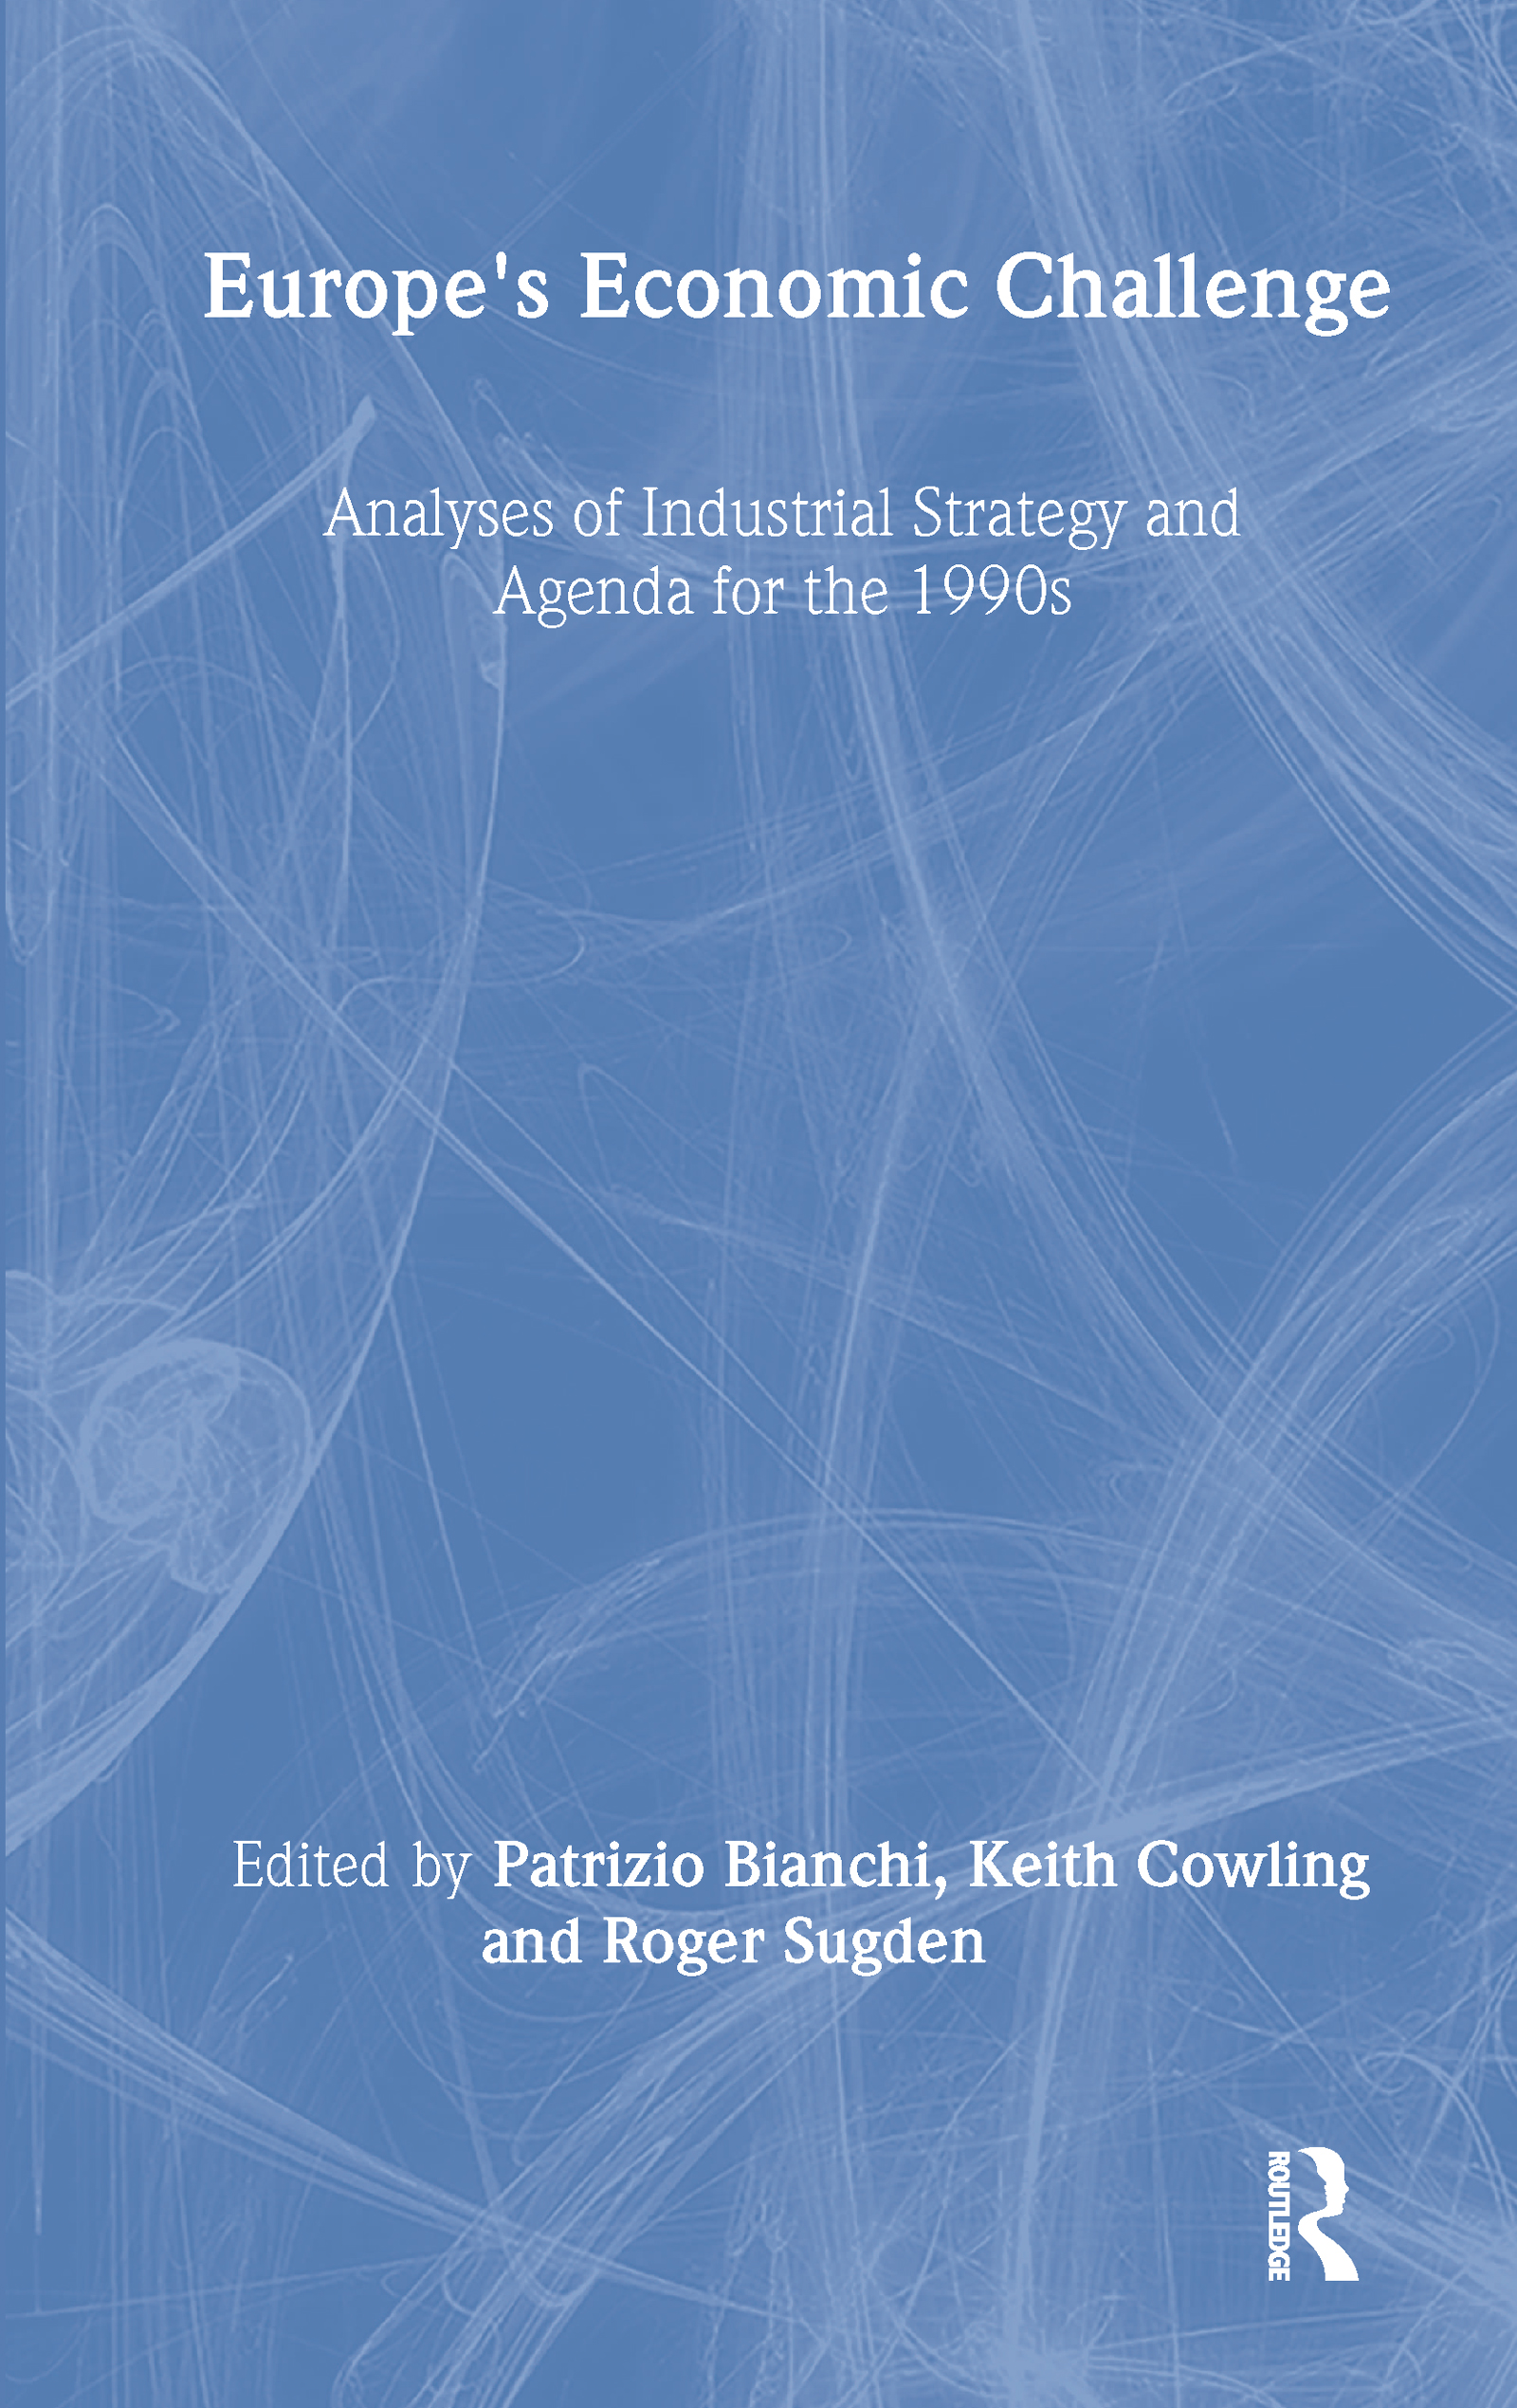 Europe's Economic Challenge: Analyses of Industrial Strategy and Agenda for the 1990s, 1st Edition (Hardback) book cover